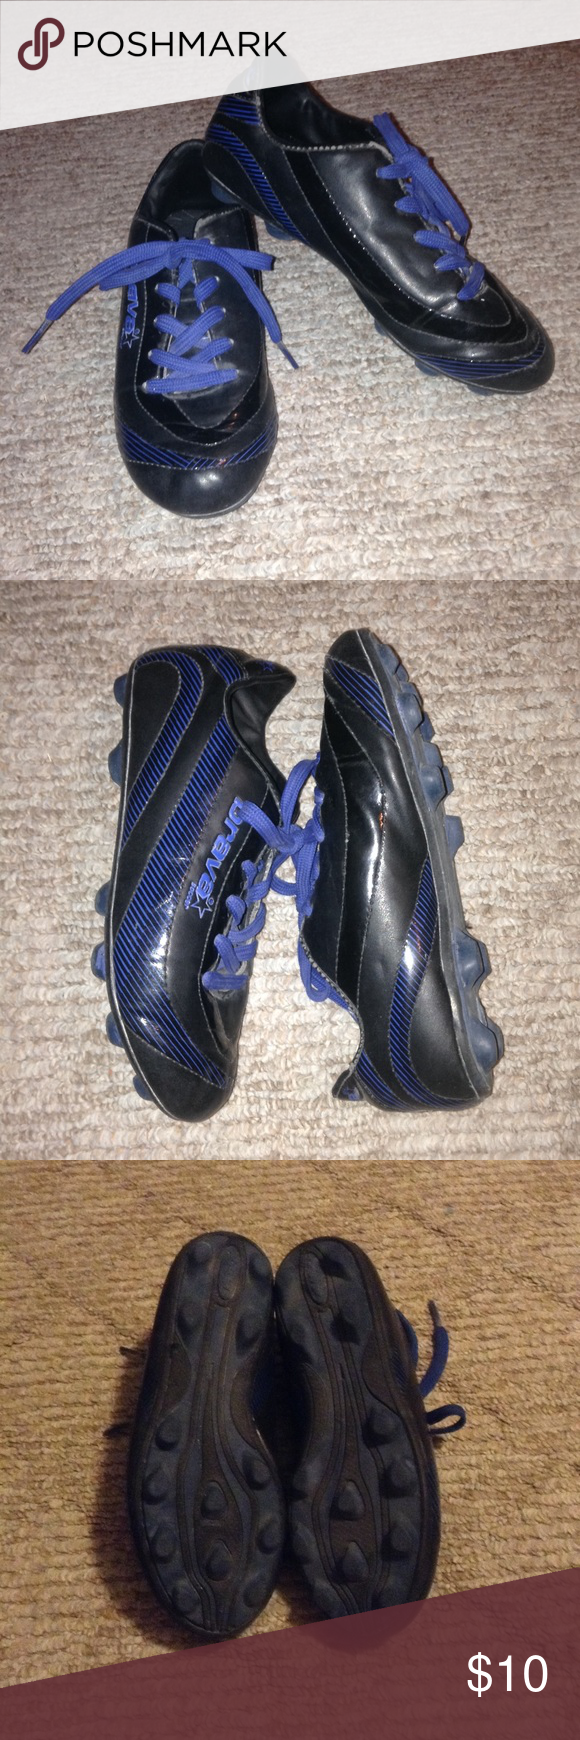 ⚽️Brava soccer cleats (With images